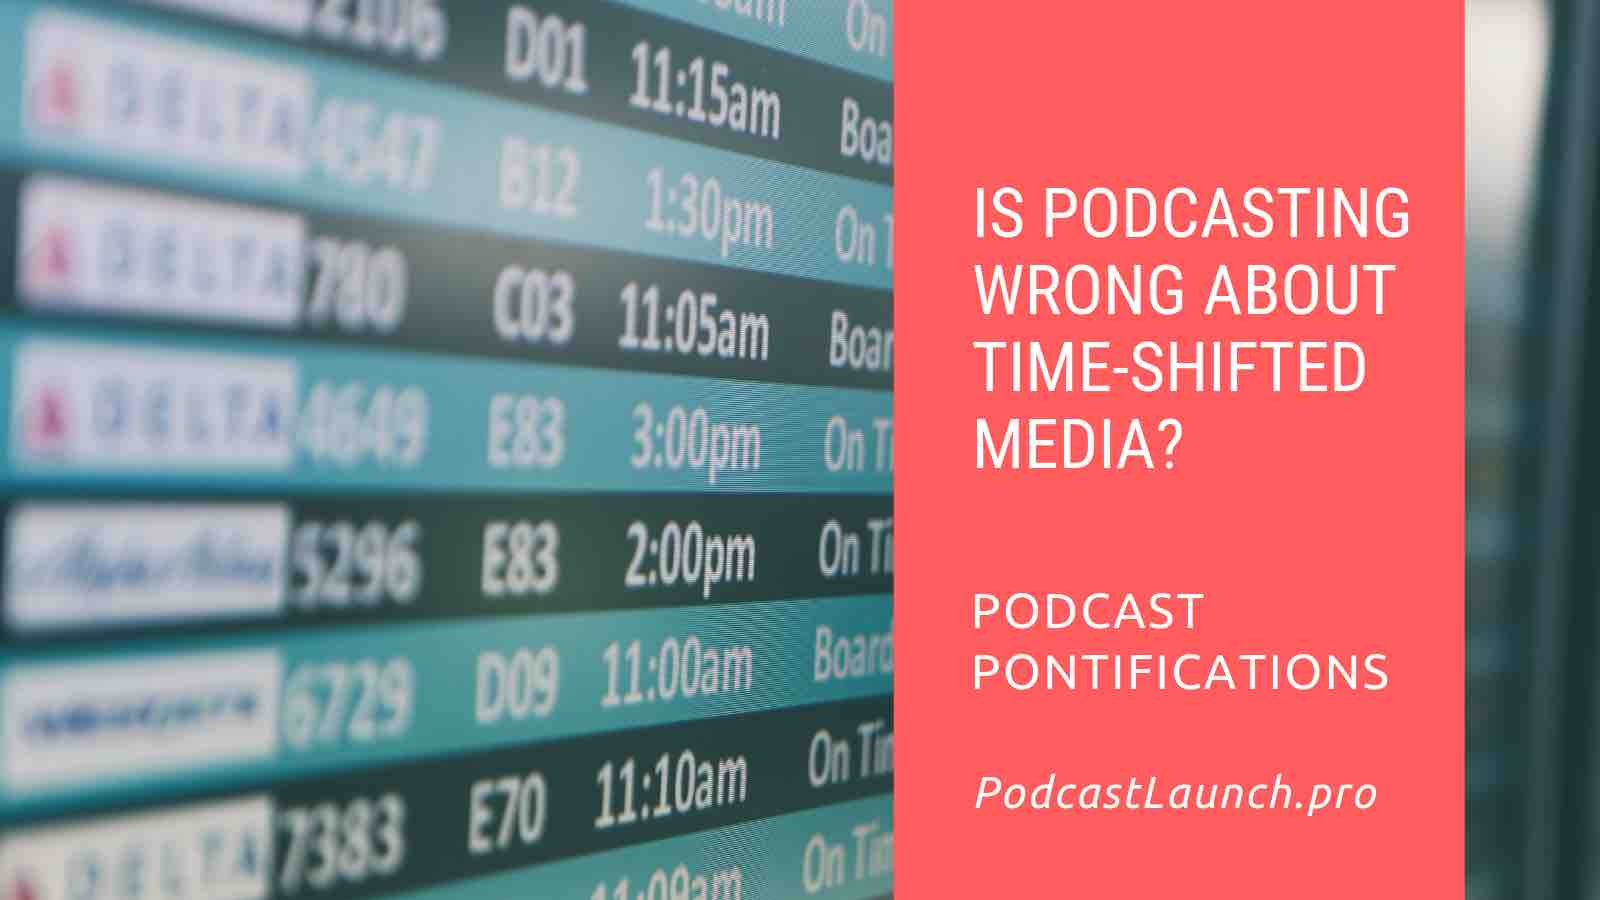 Is Podcasting Wrong About Time-Shifted Media?